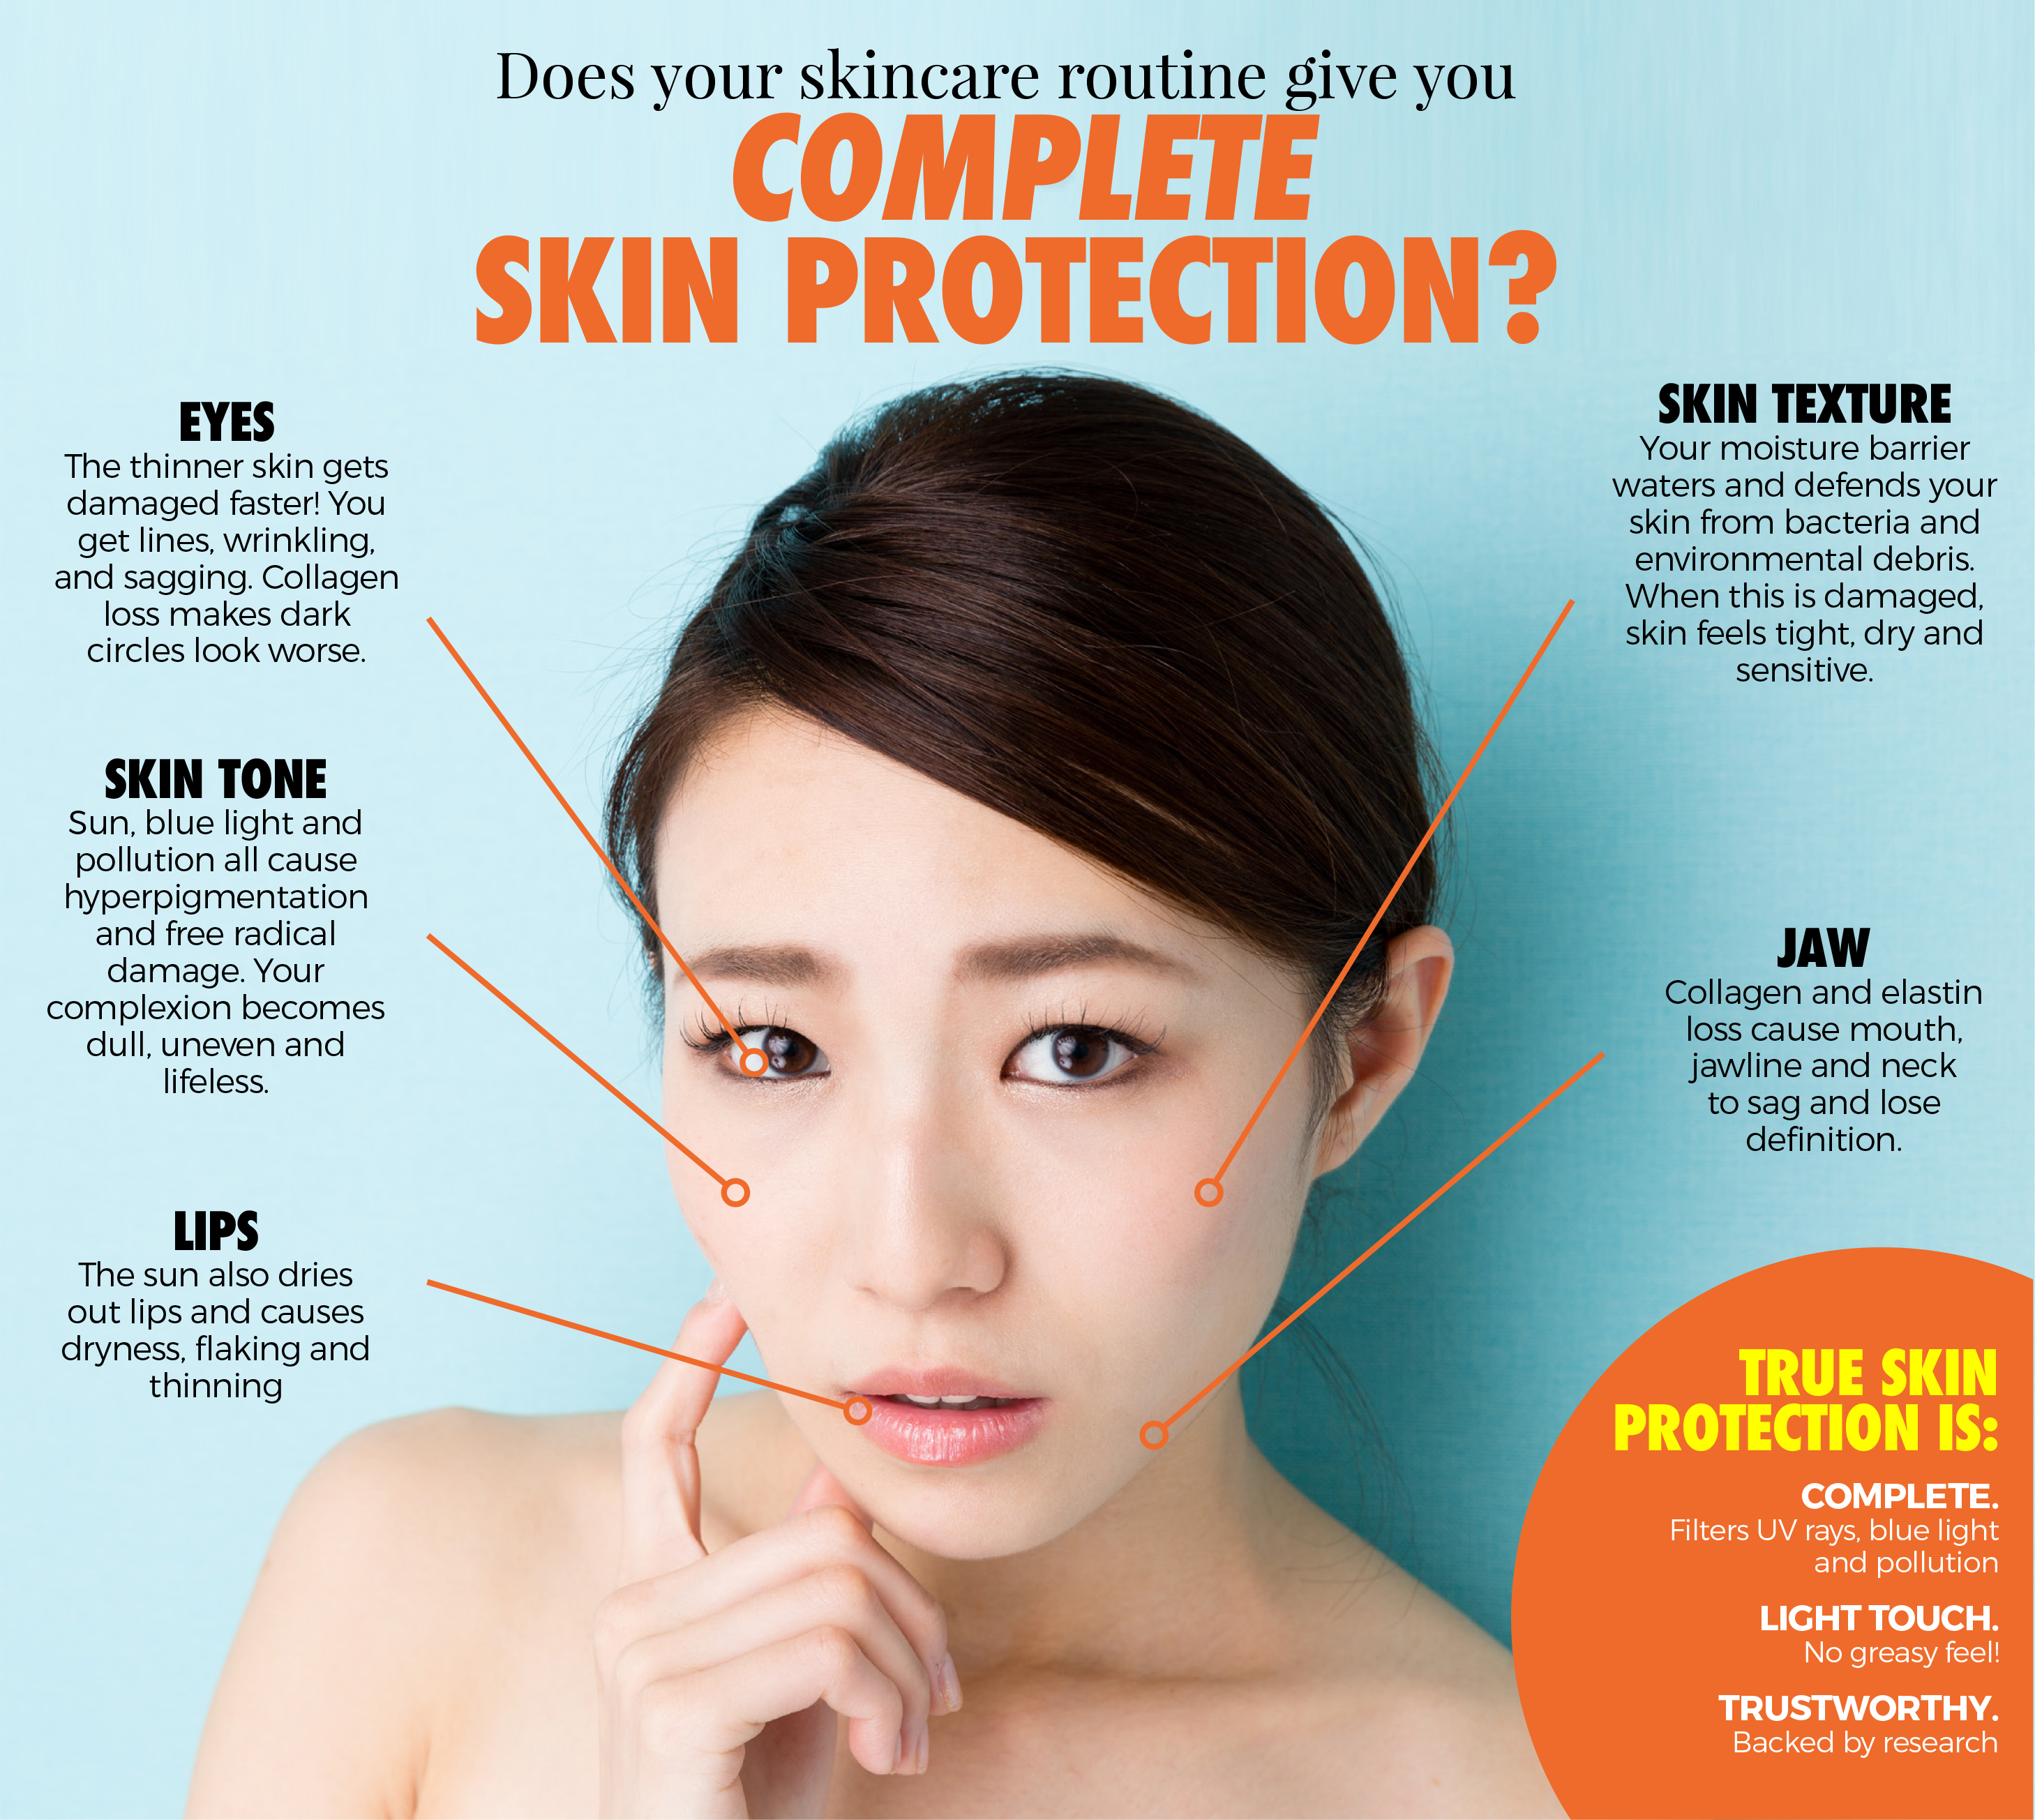 Complete Skin Protection